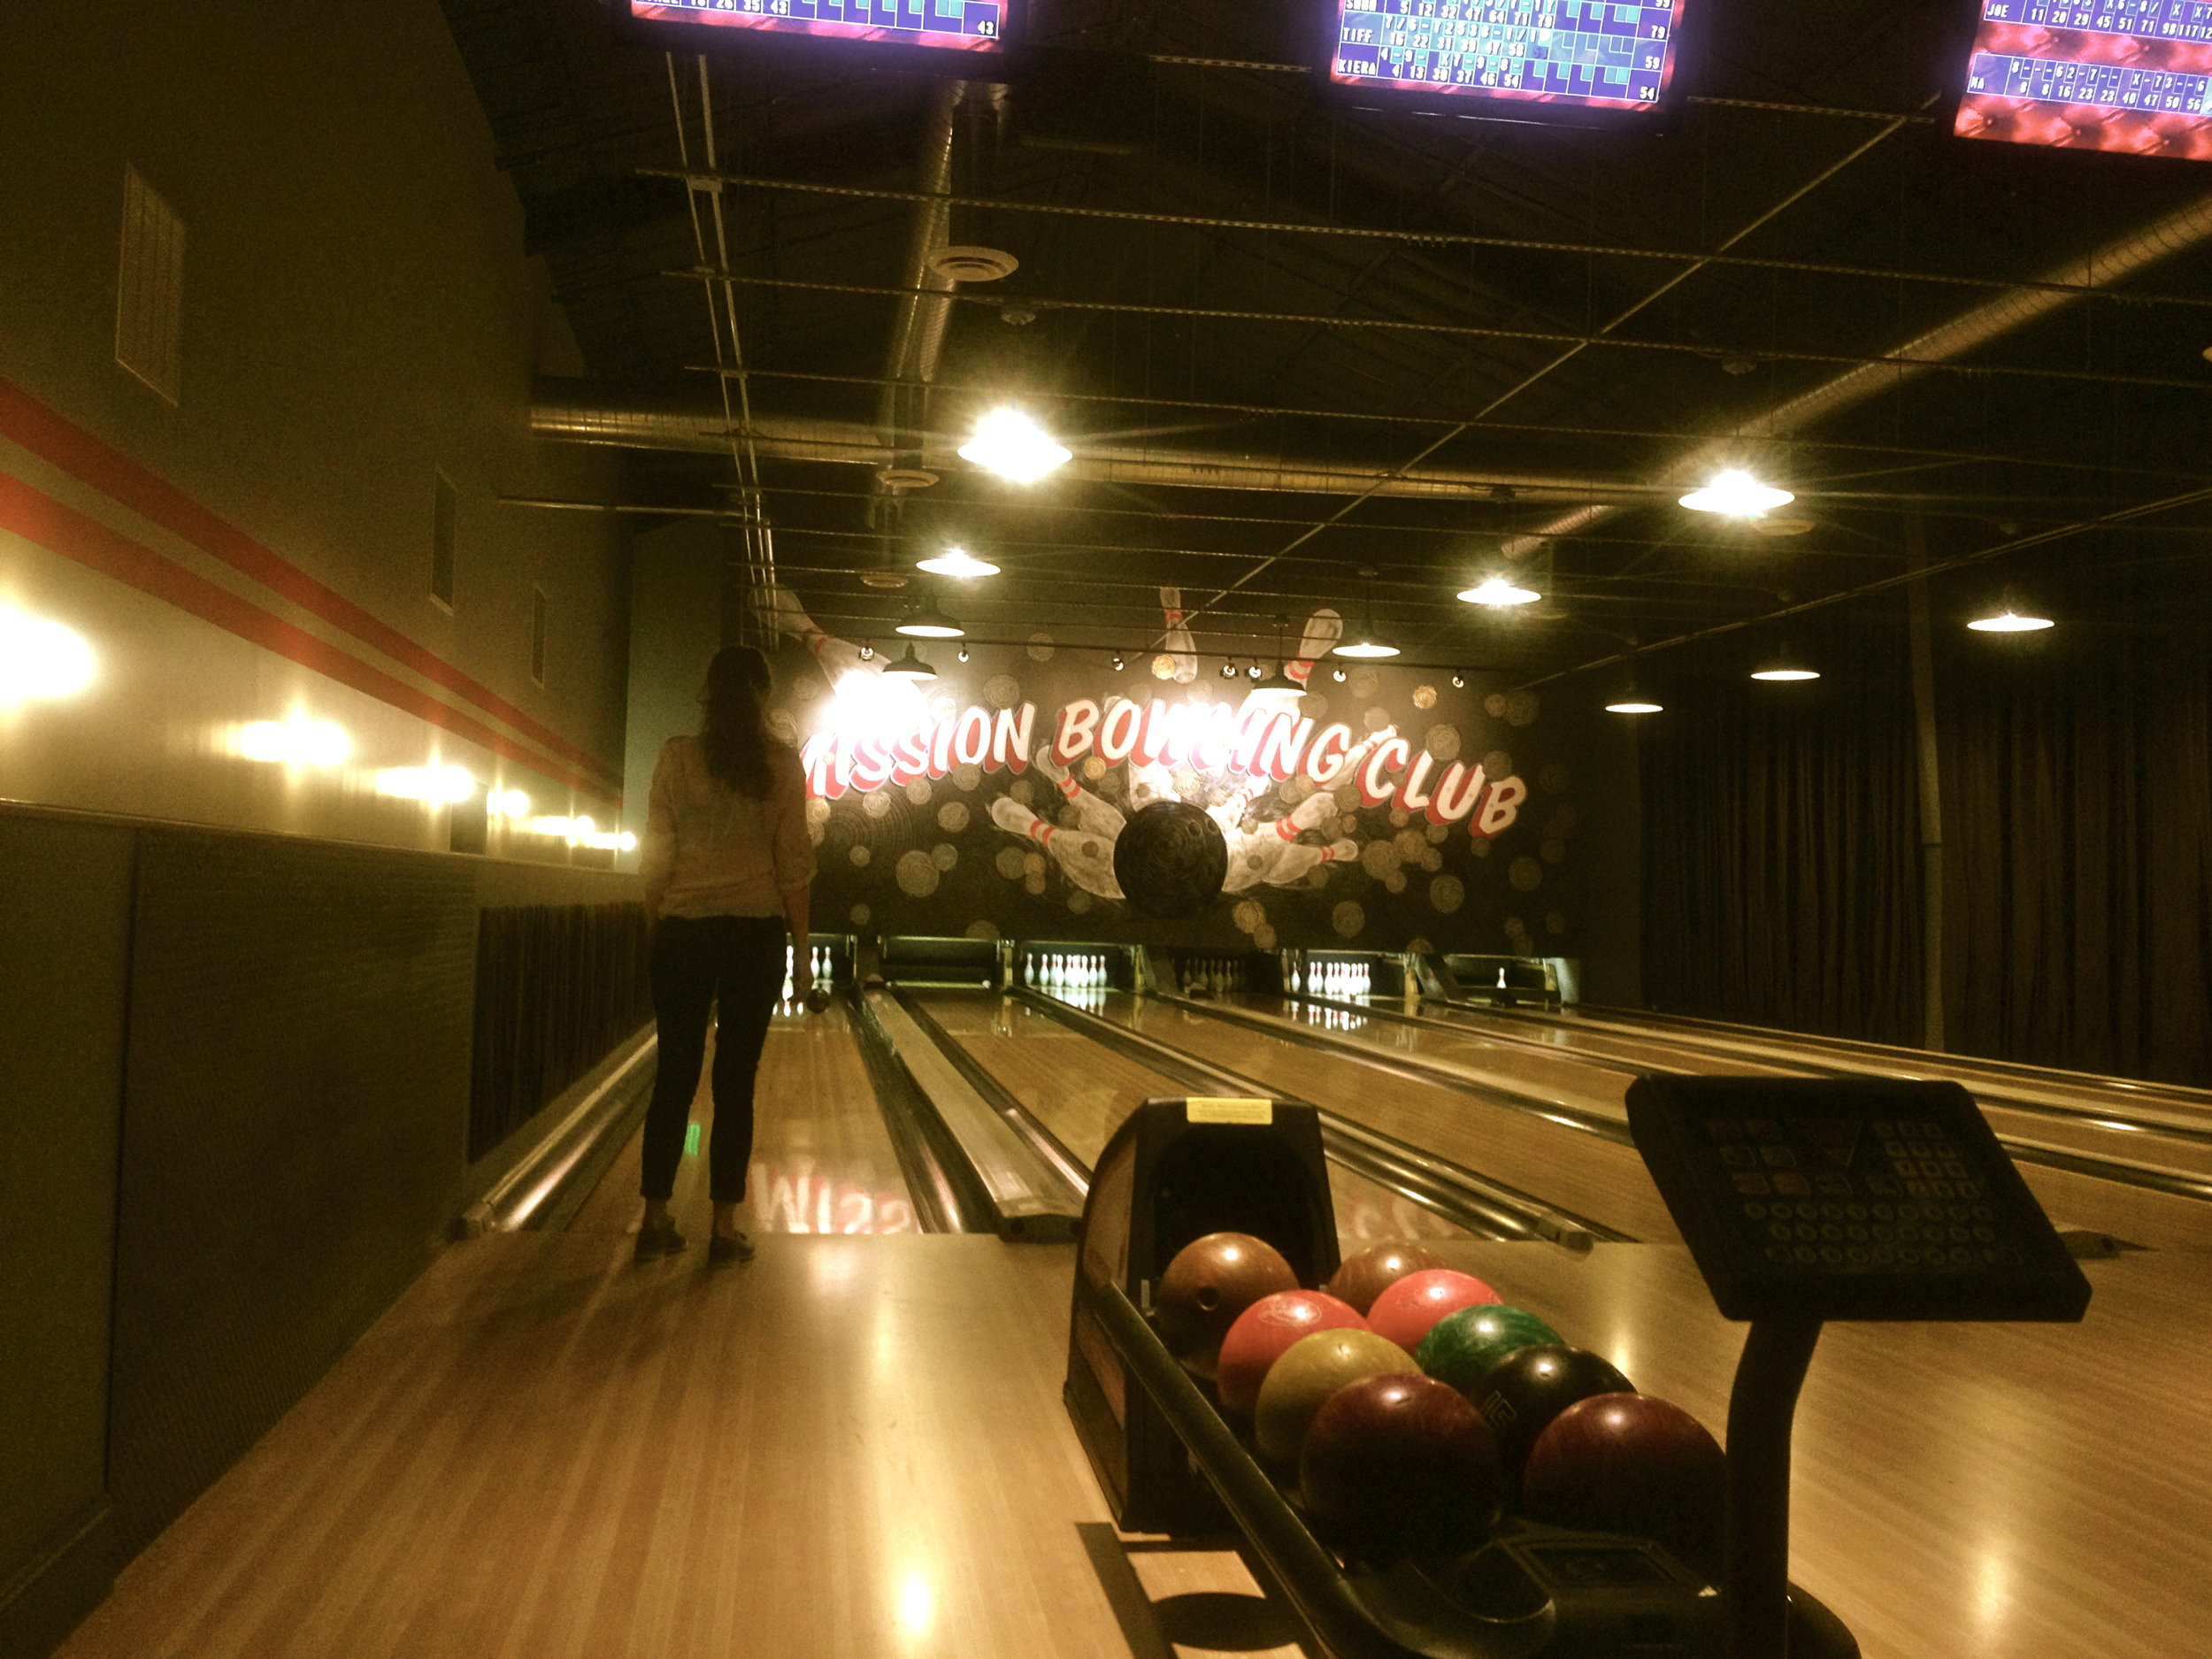 Striking out at Mission Bowling!